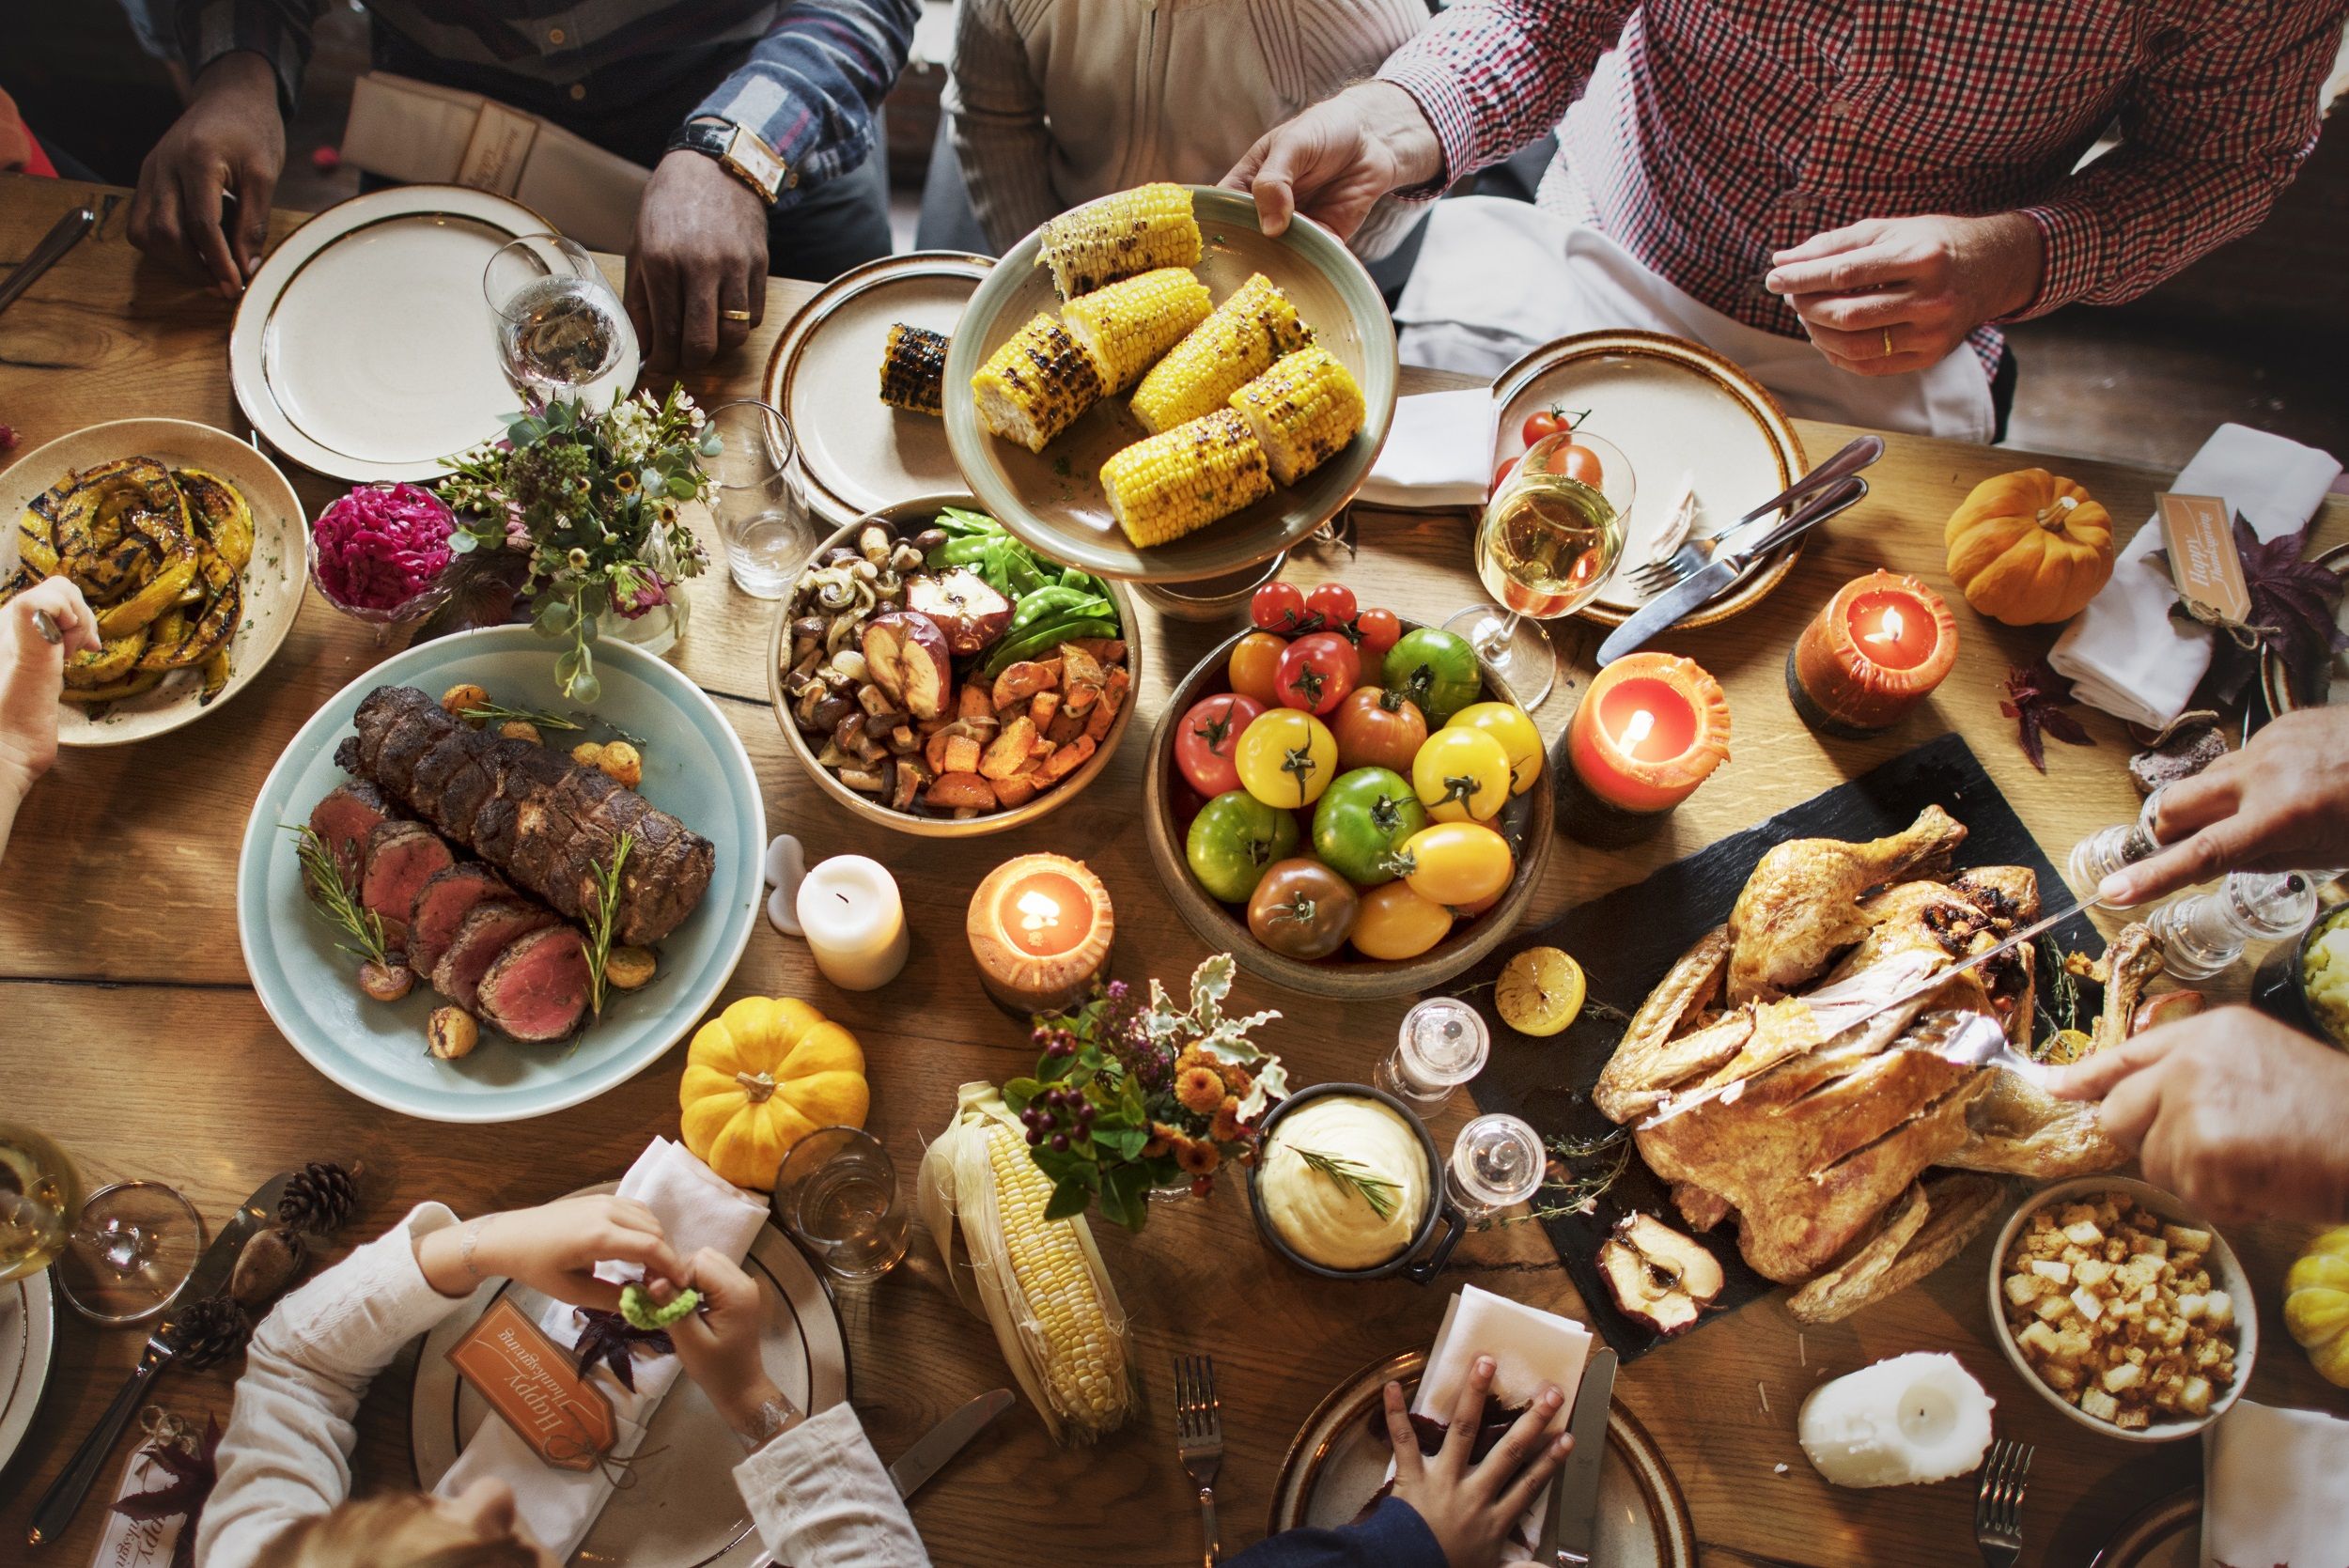 thanksgiving day feast on wooden table